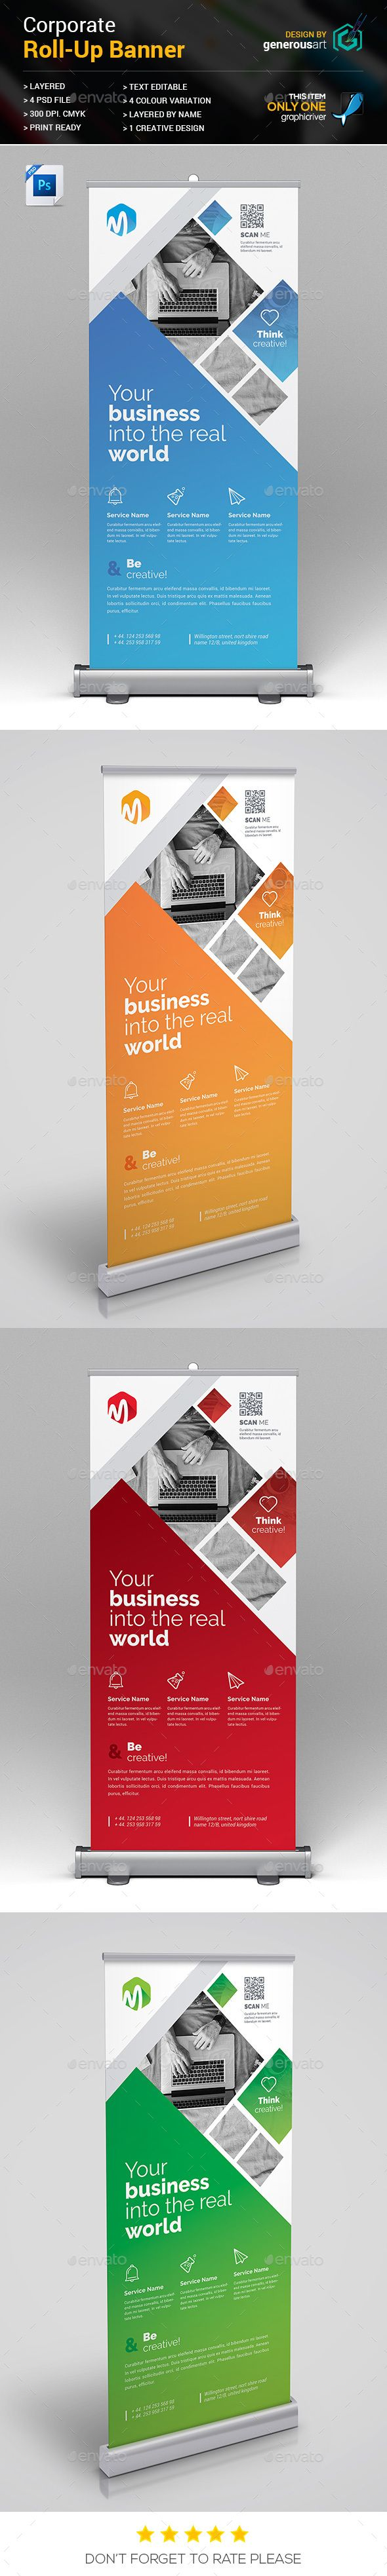 Banner Design Ideas 20 creative vertical banner design ideas Roll Up Banner